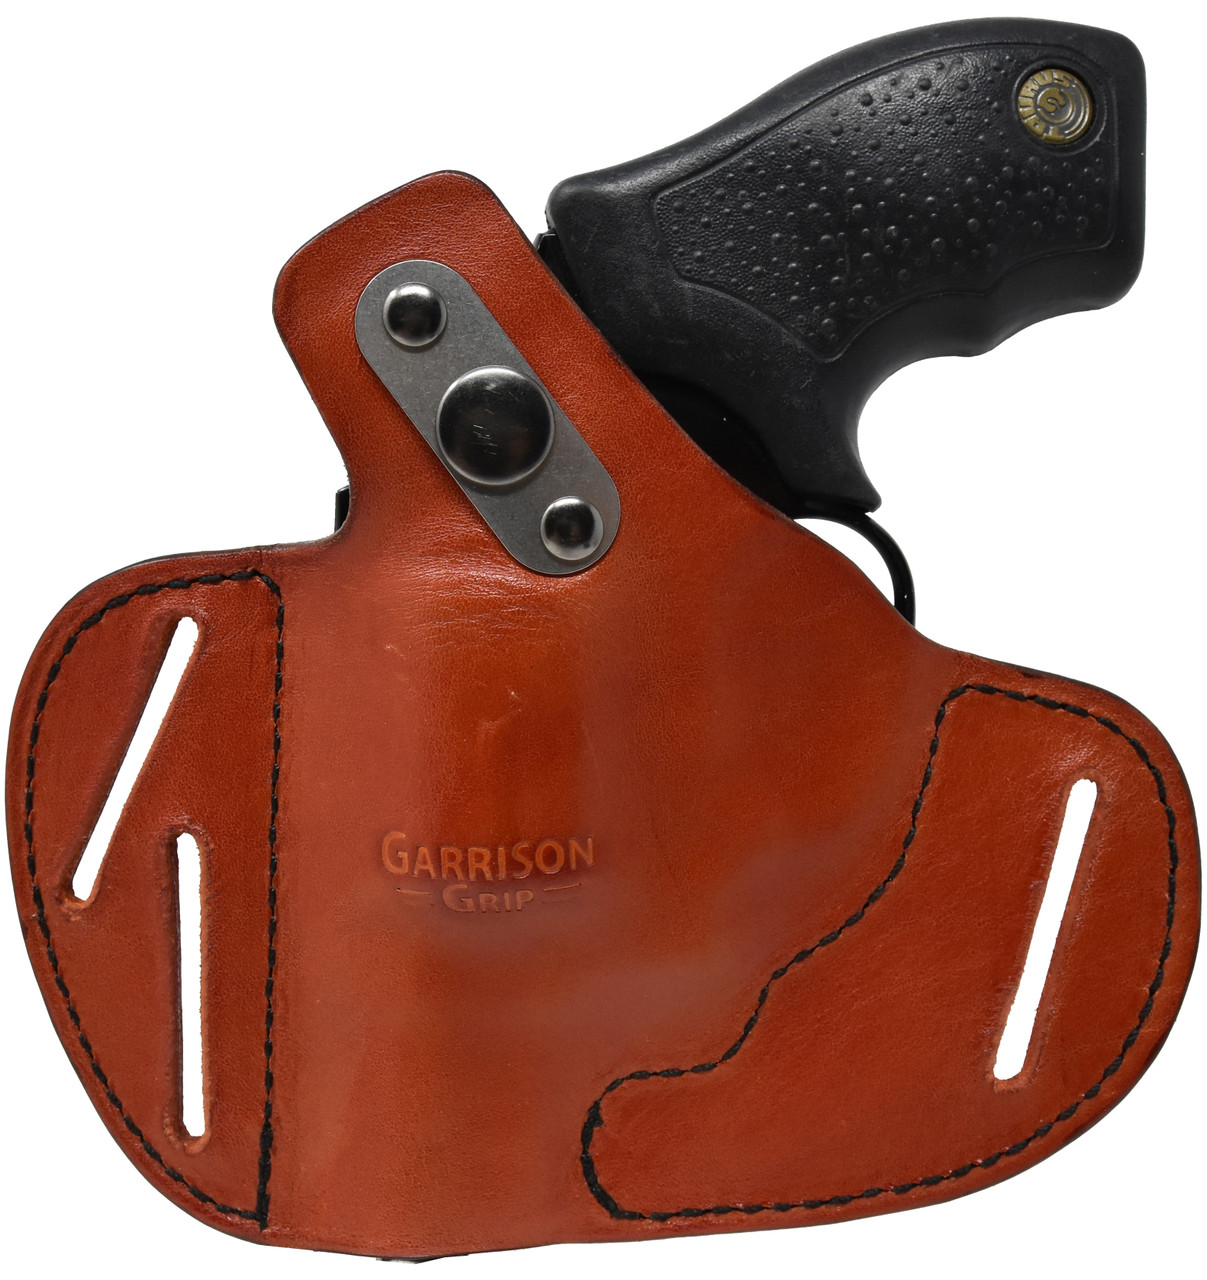 For Taurus Small Frame 38 Special and 9mm Revolvers, Garrison Grip Premium Full Grain Tan Italian Leather 2 Position Tactical Holster